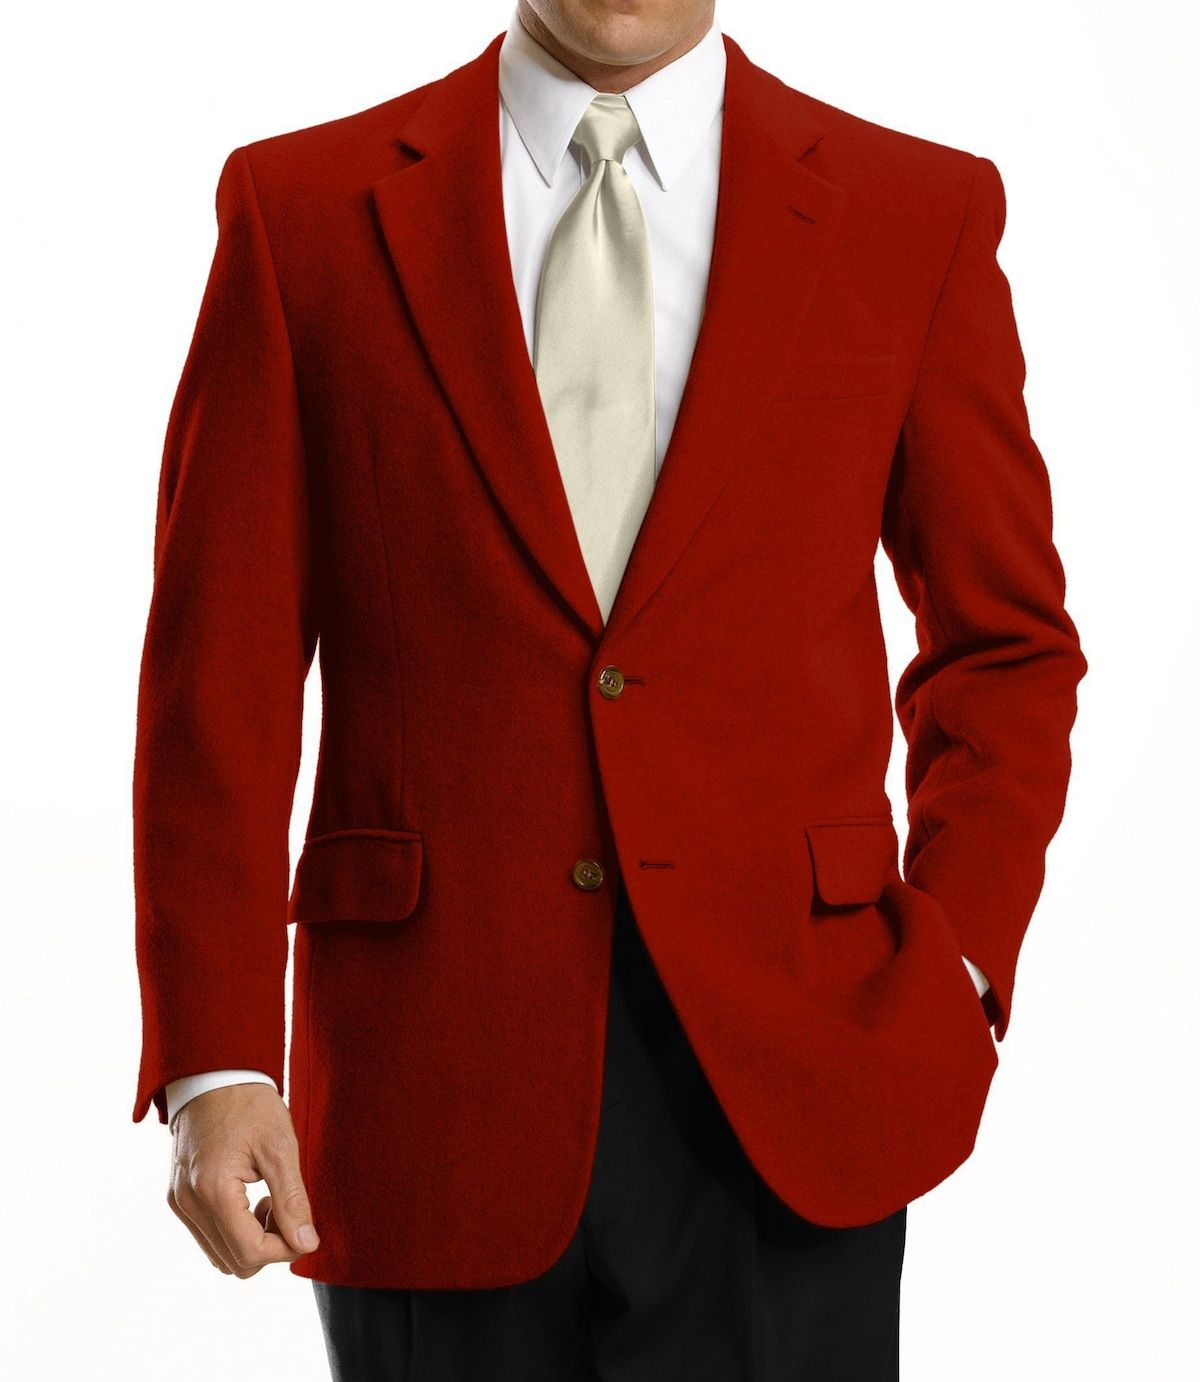 d44457174 Executive Collection Traditional Fit Camelhair Blazer CLEARANCE ...